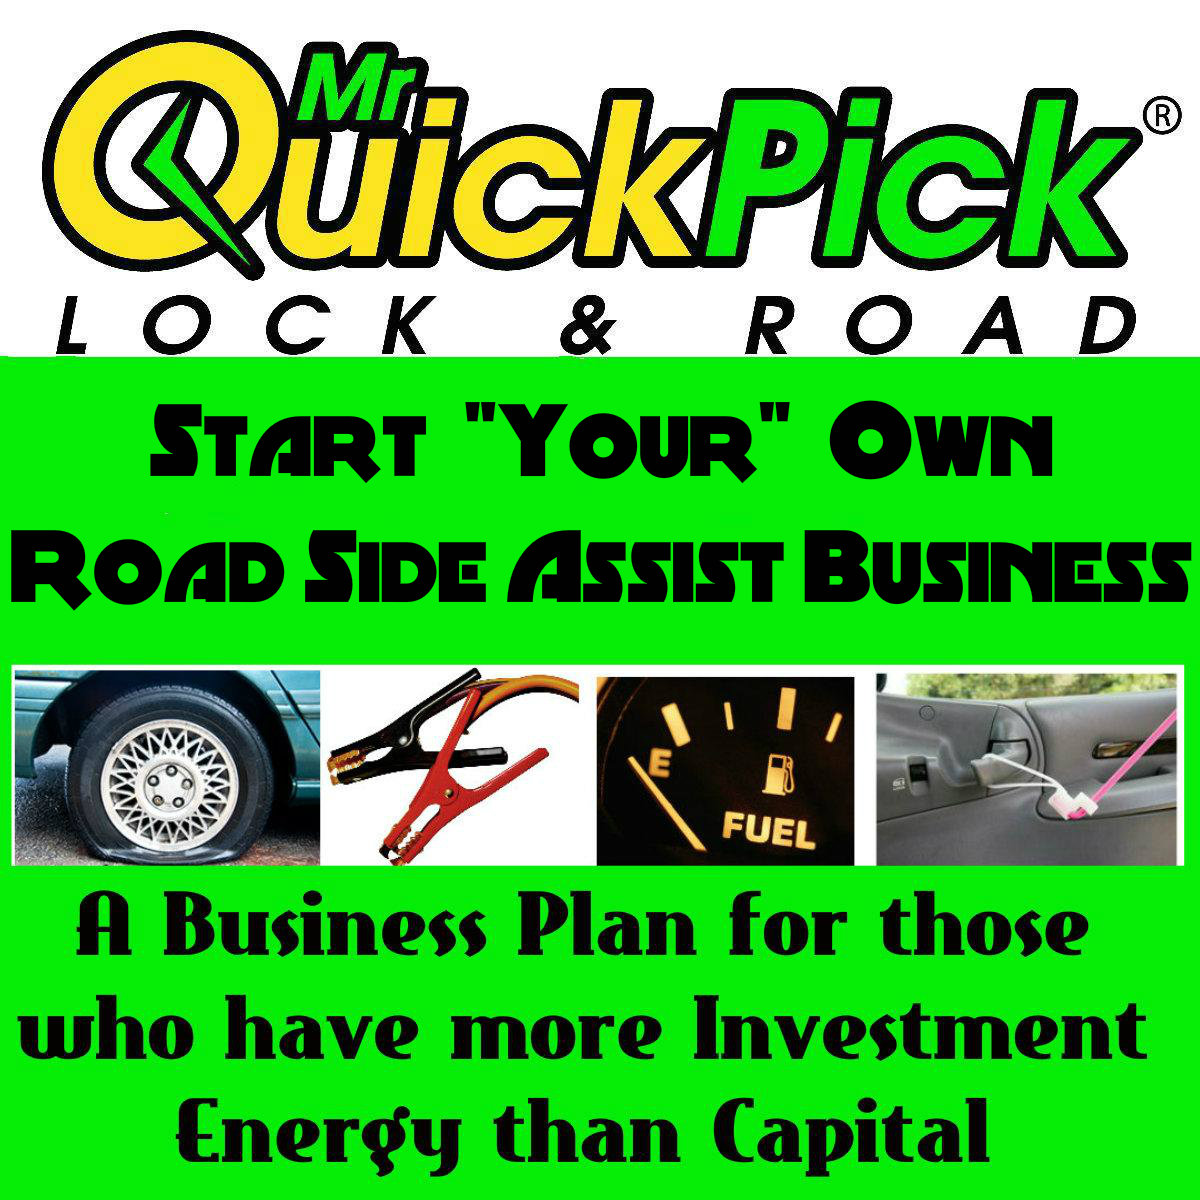 Mr. QuickPick  Lock and Road